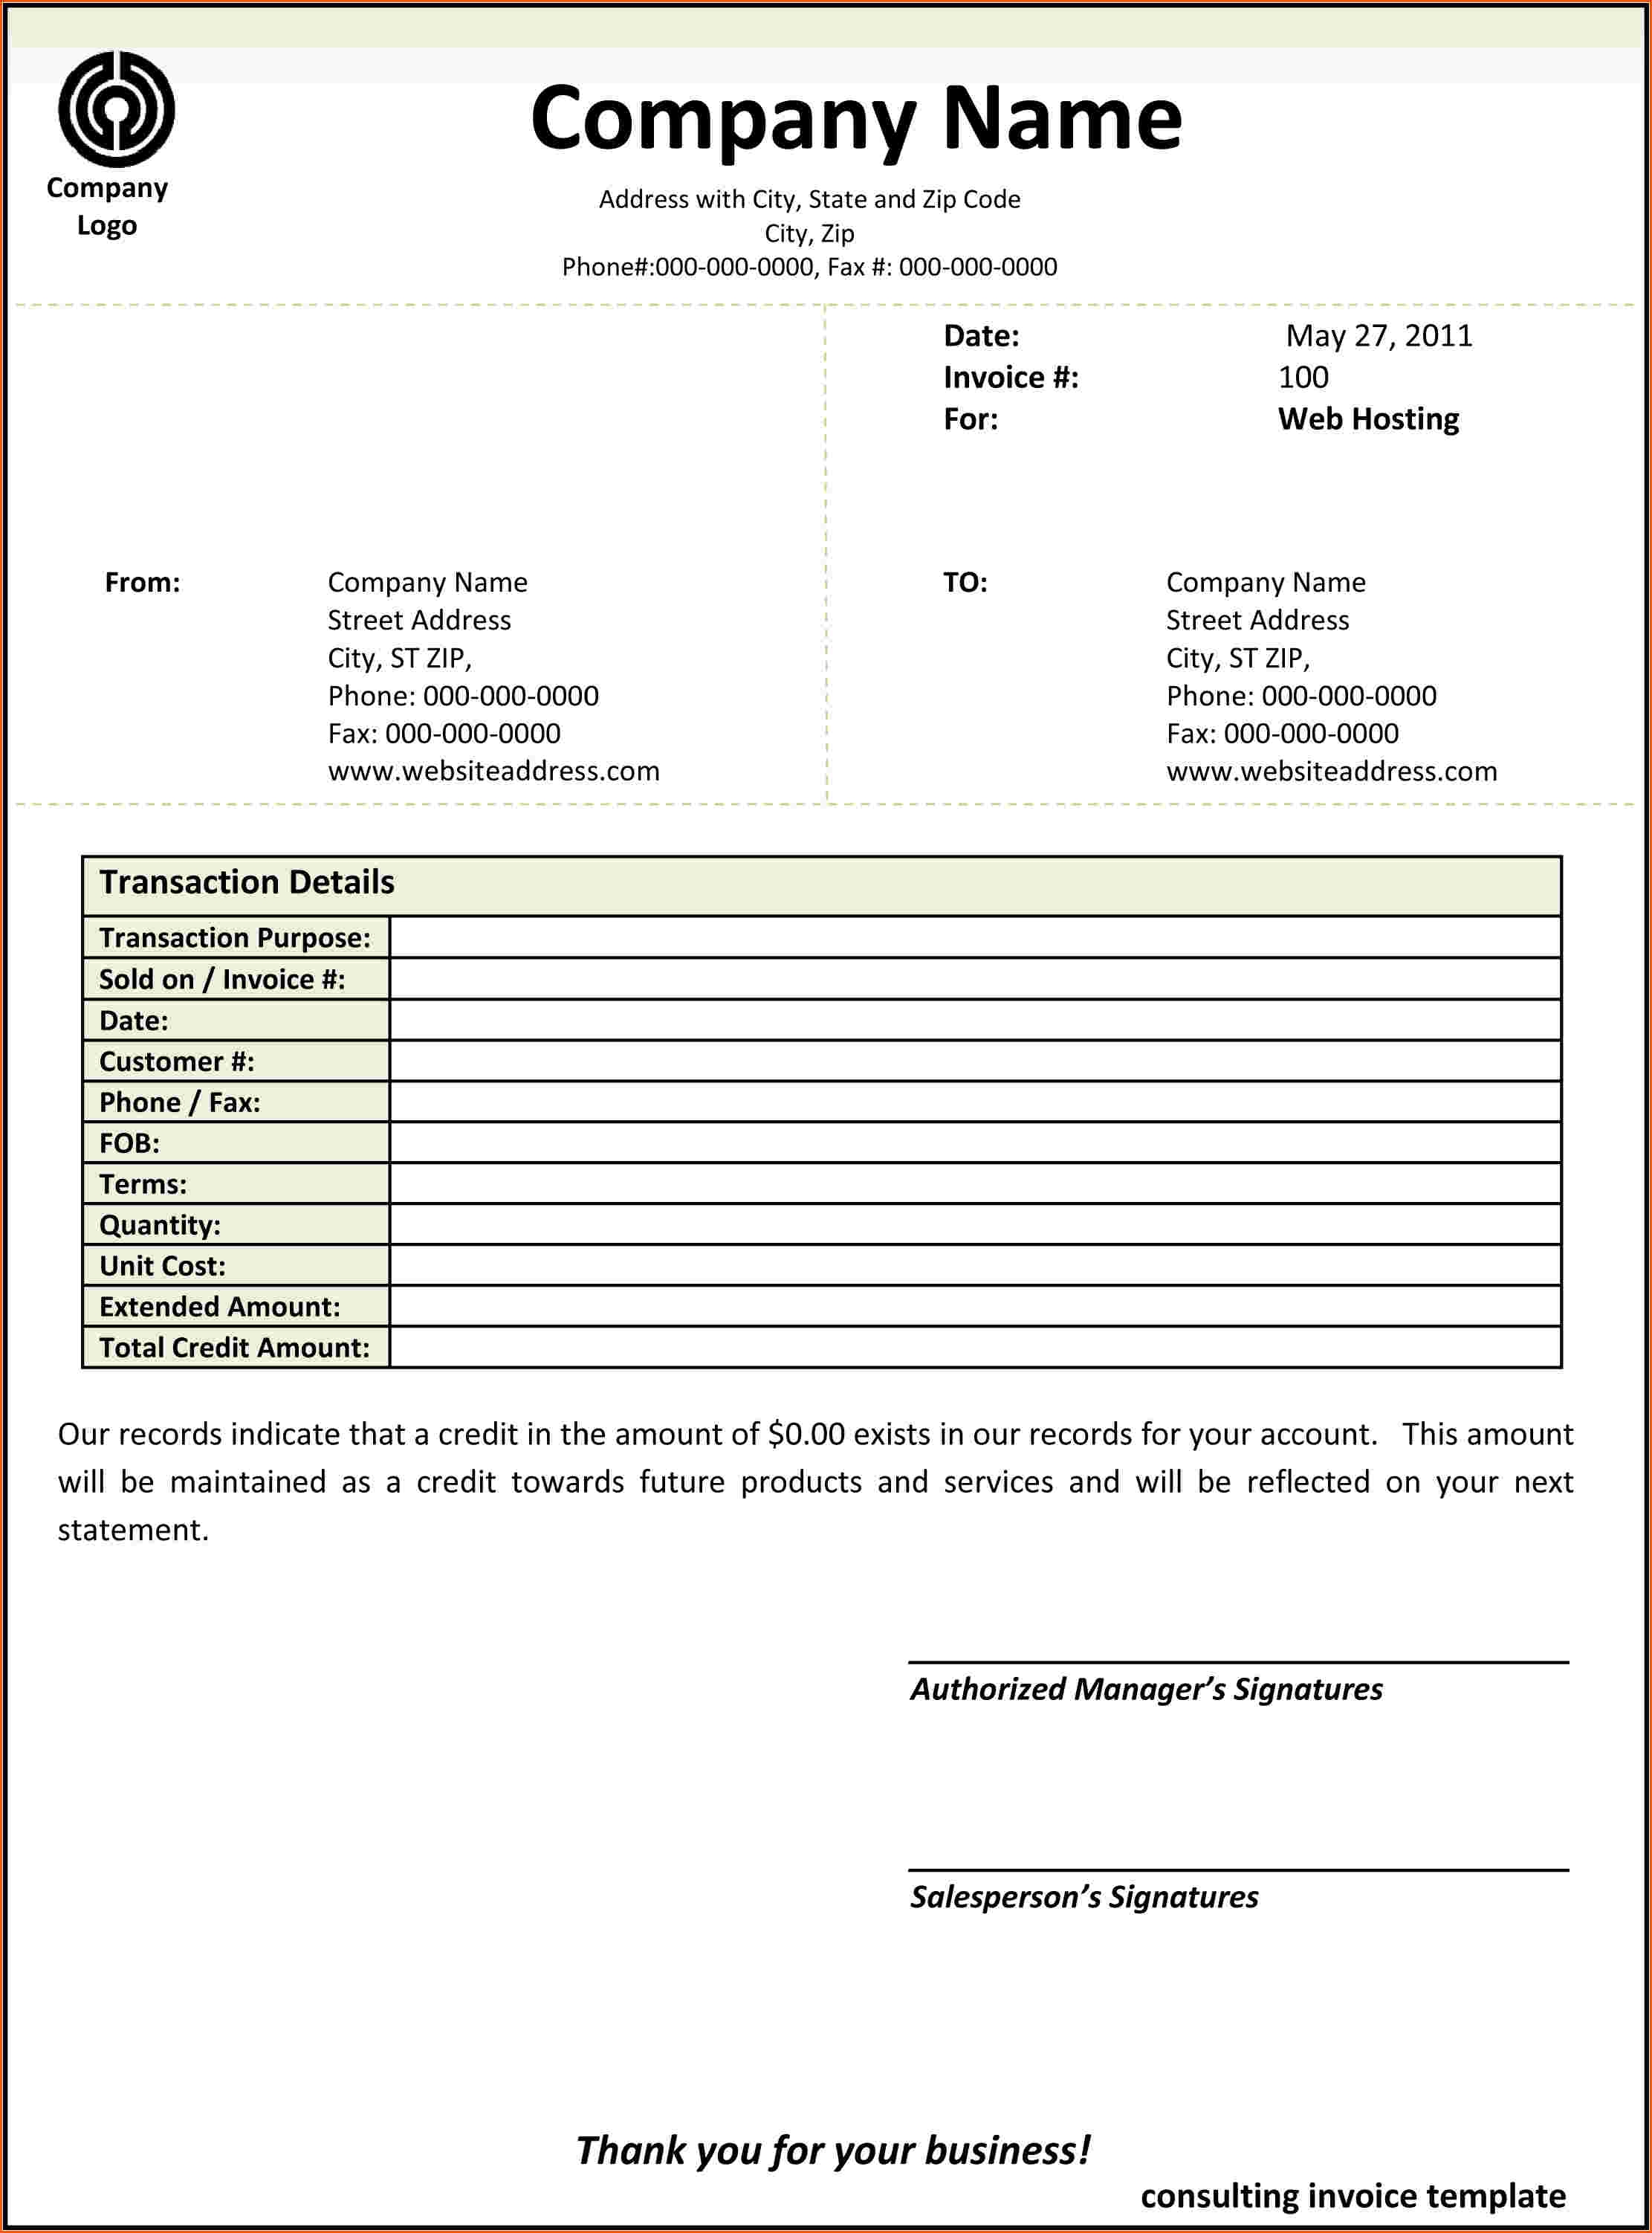 consulting invoice template word 8 consulting invoice template word denial letter sample 2223 X 3004